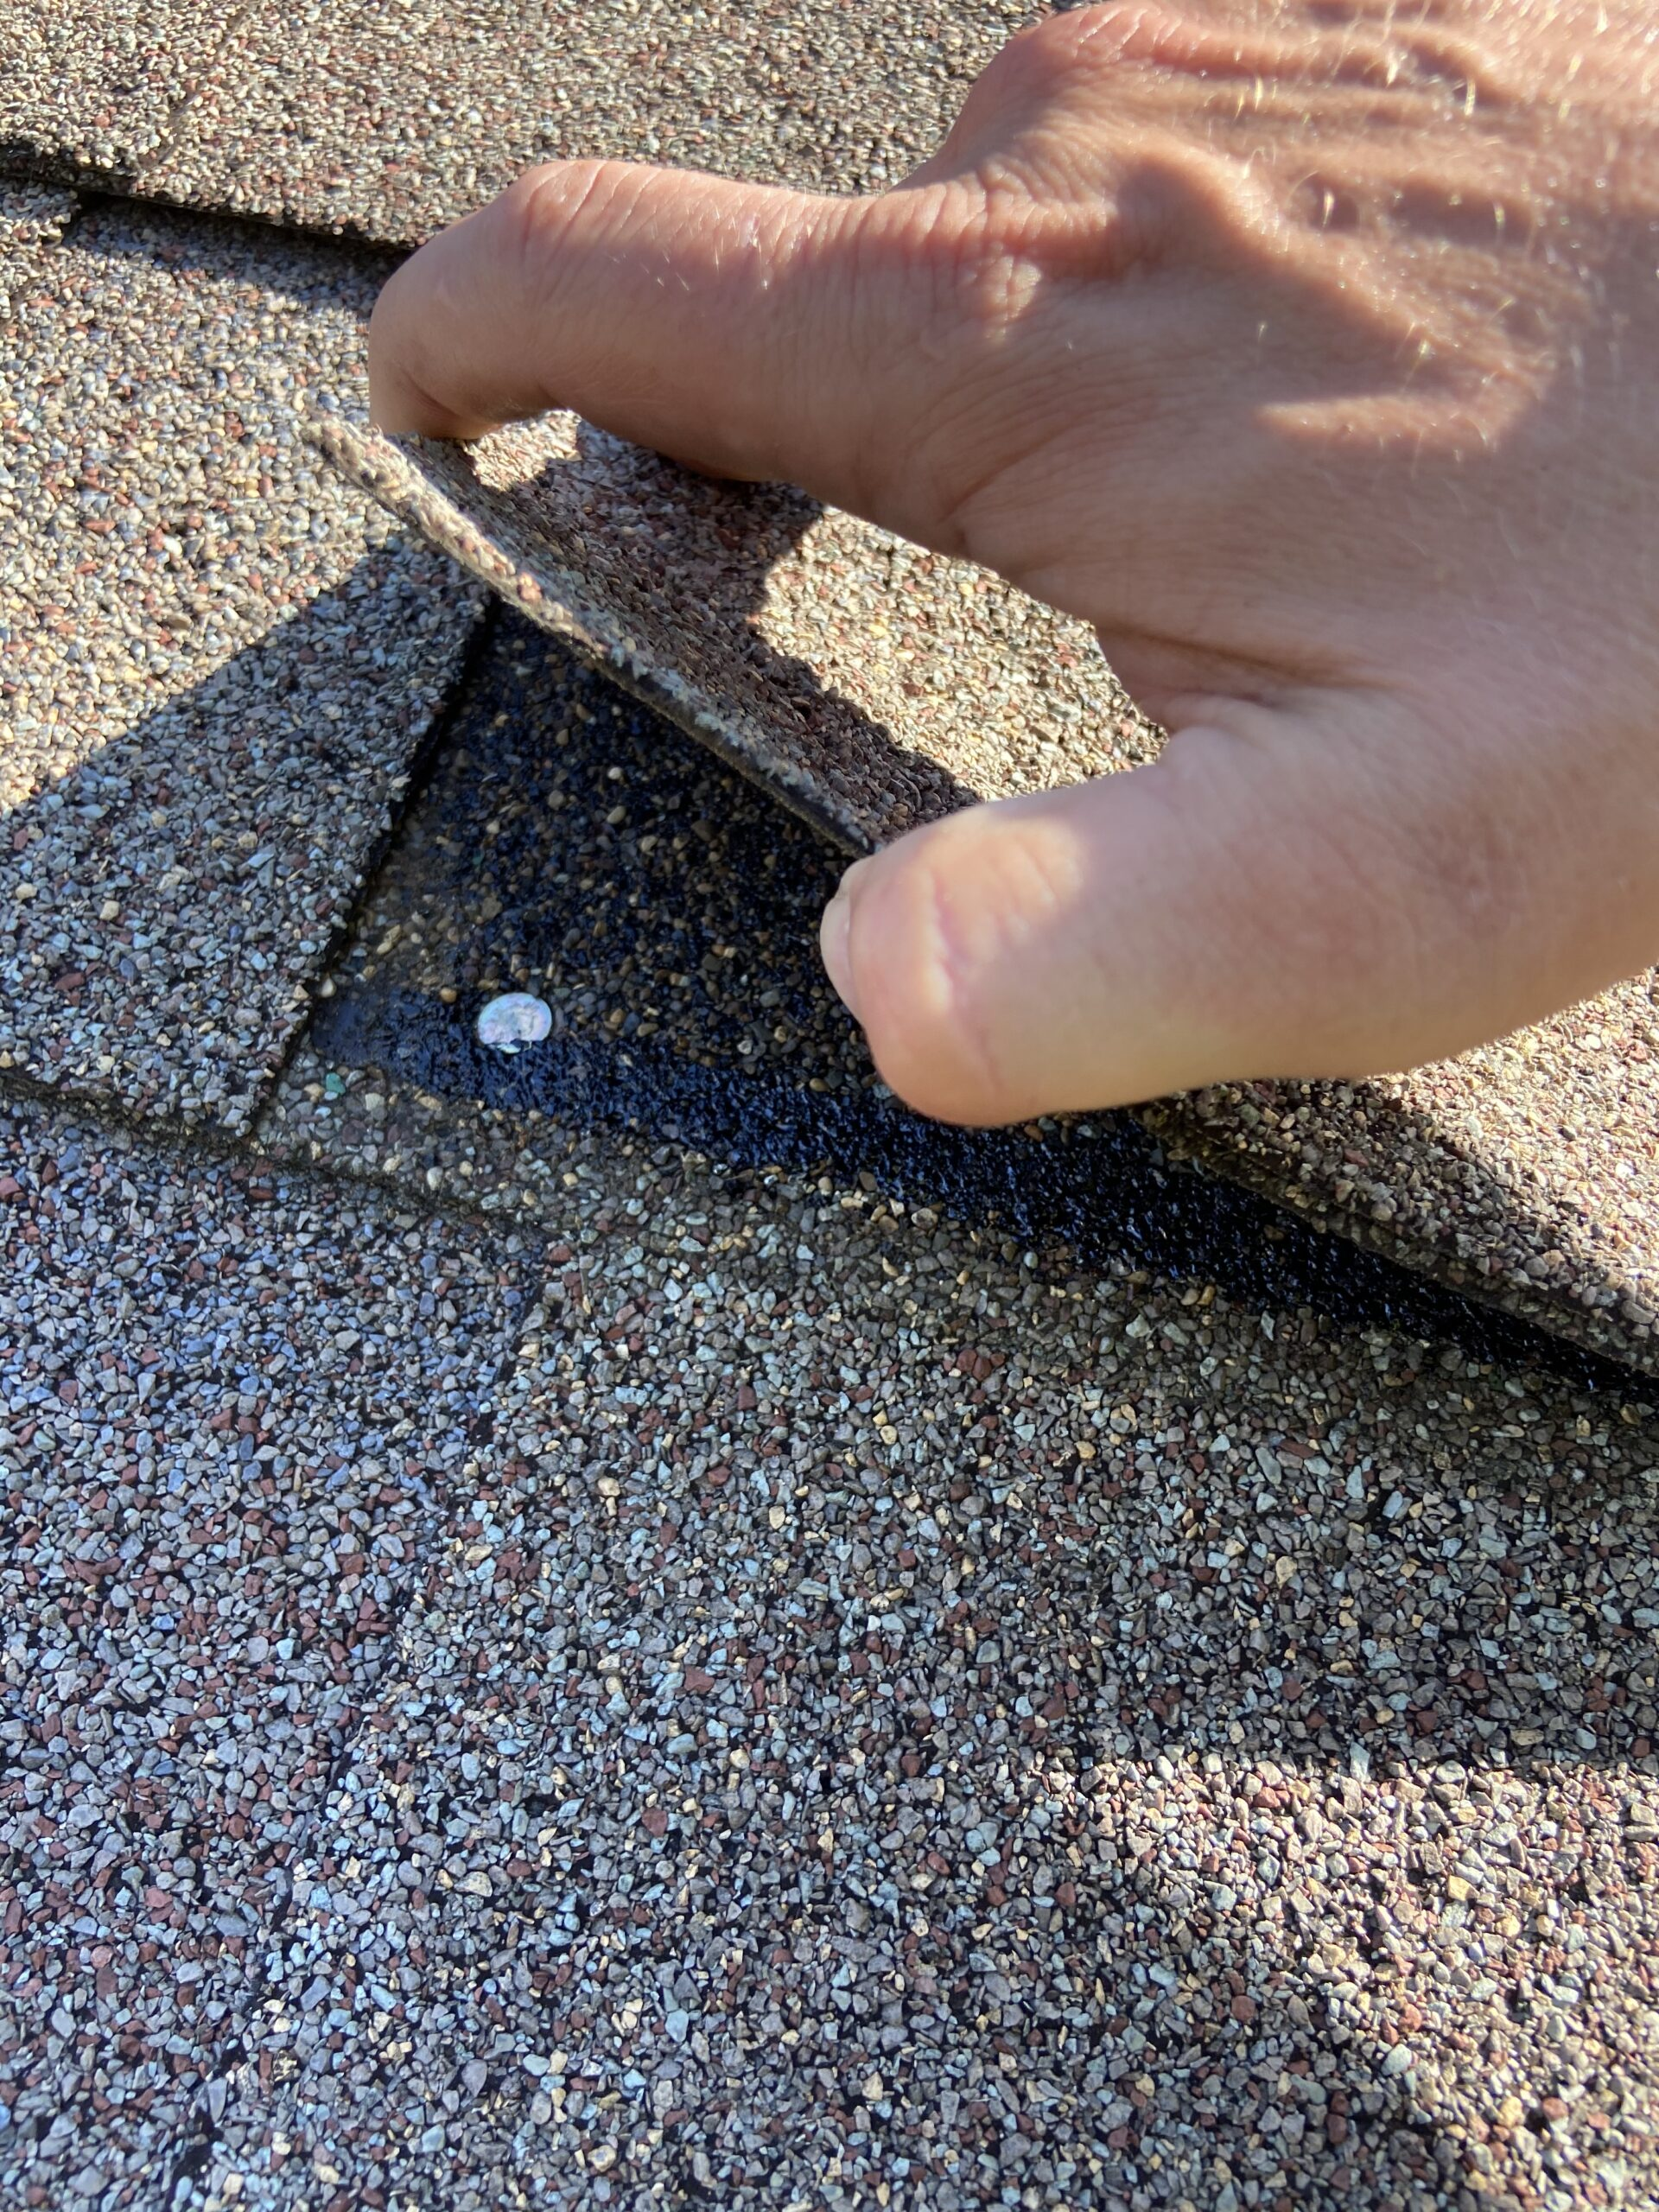 This is a picture of a nail that is miss placed on a shingle roof it is too close to the shingle union